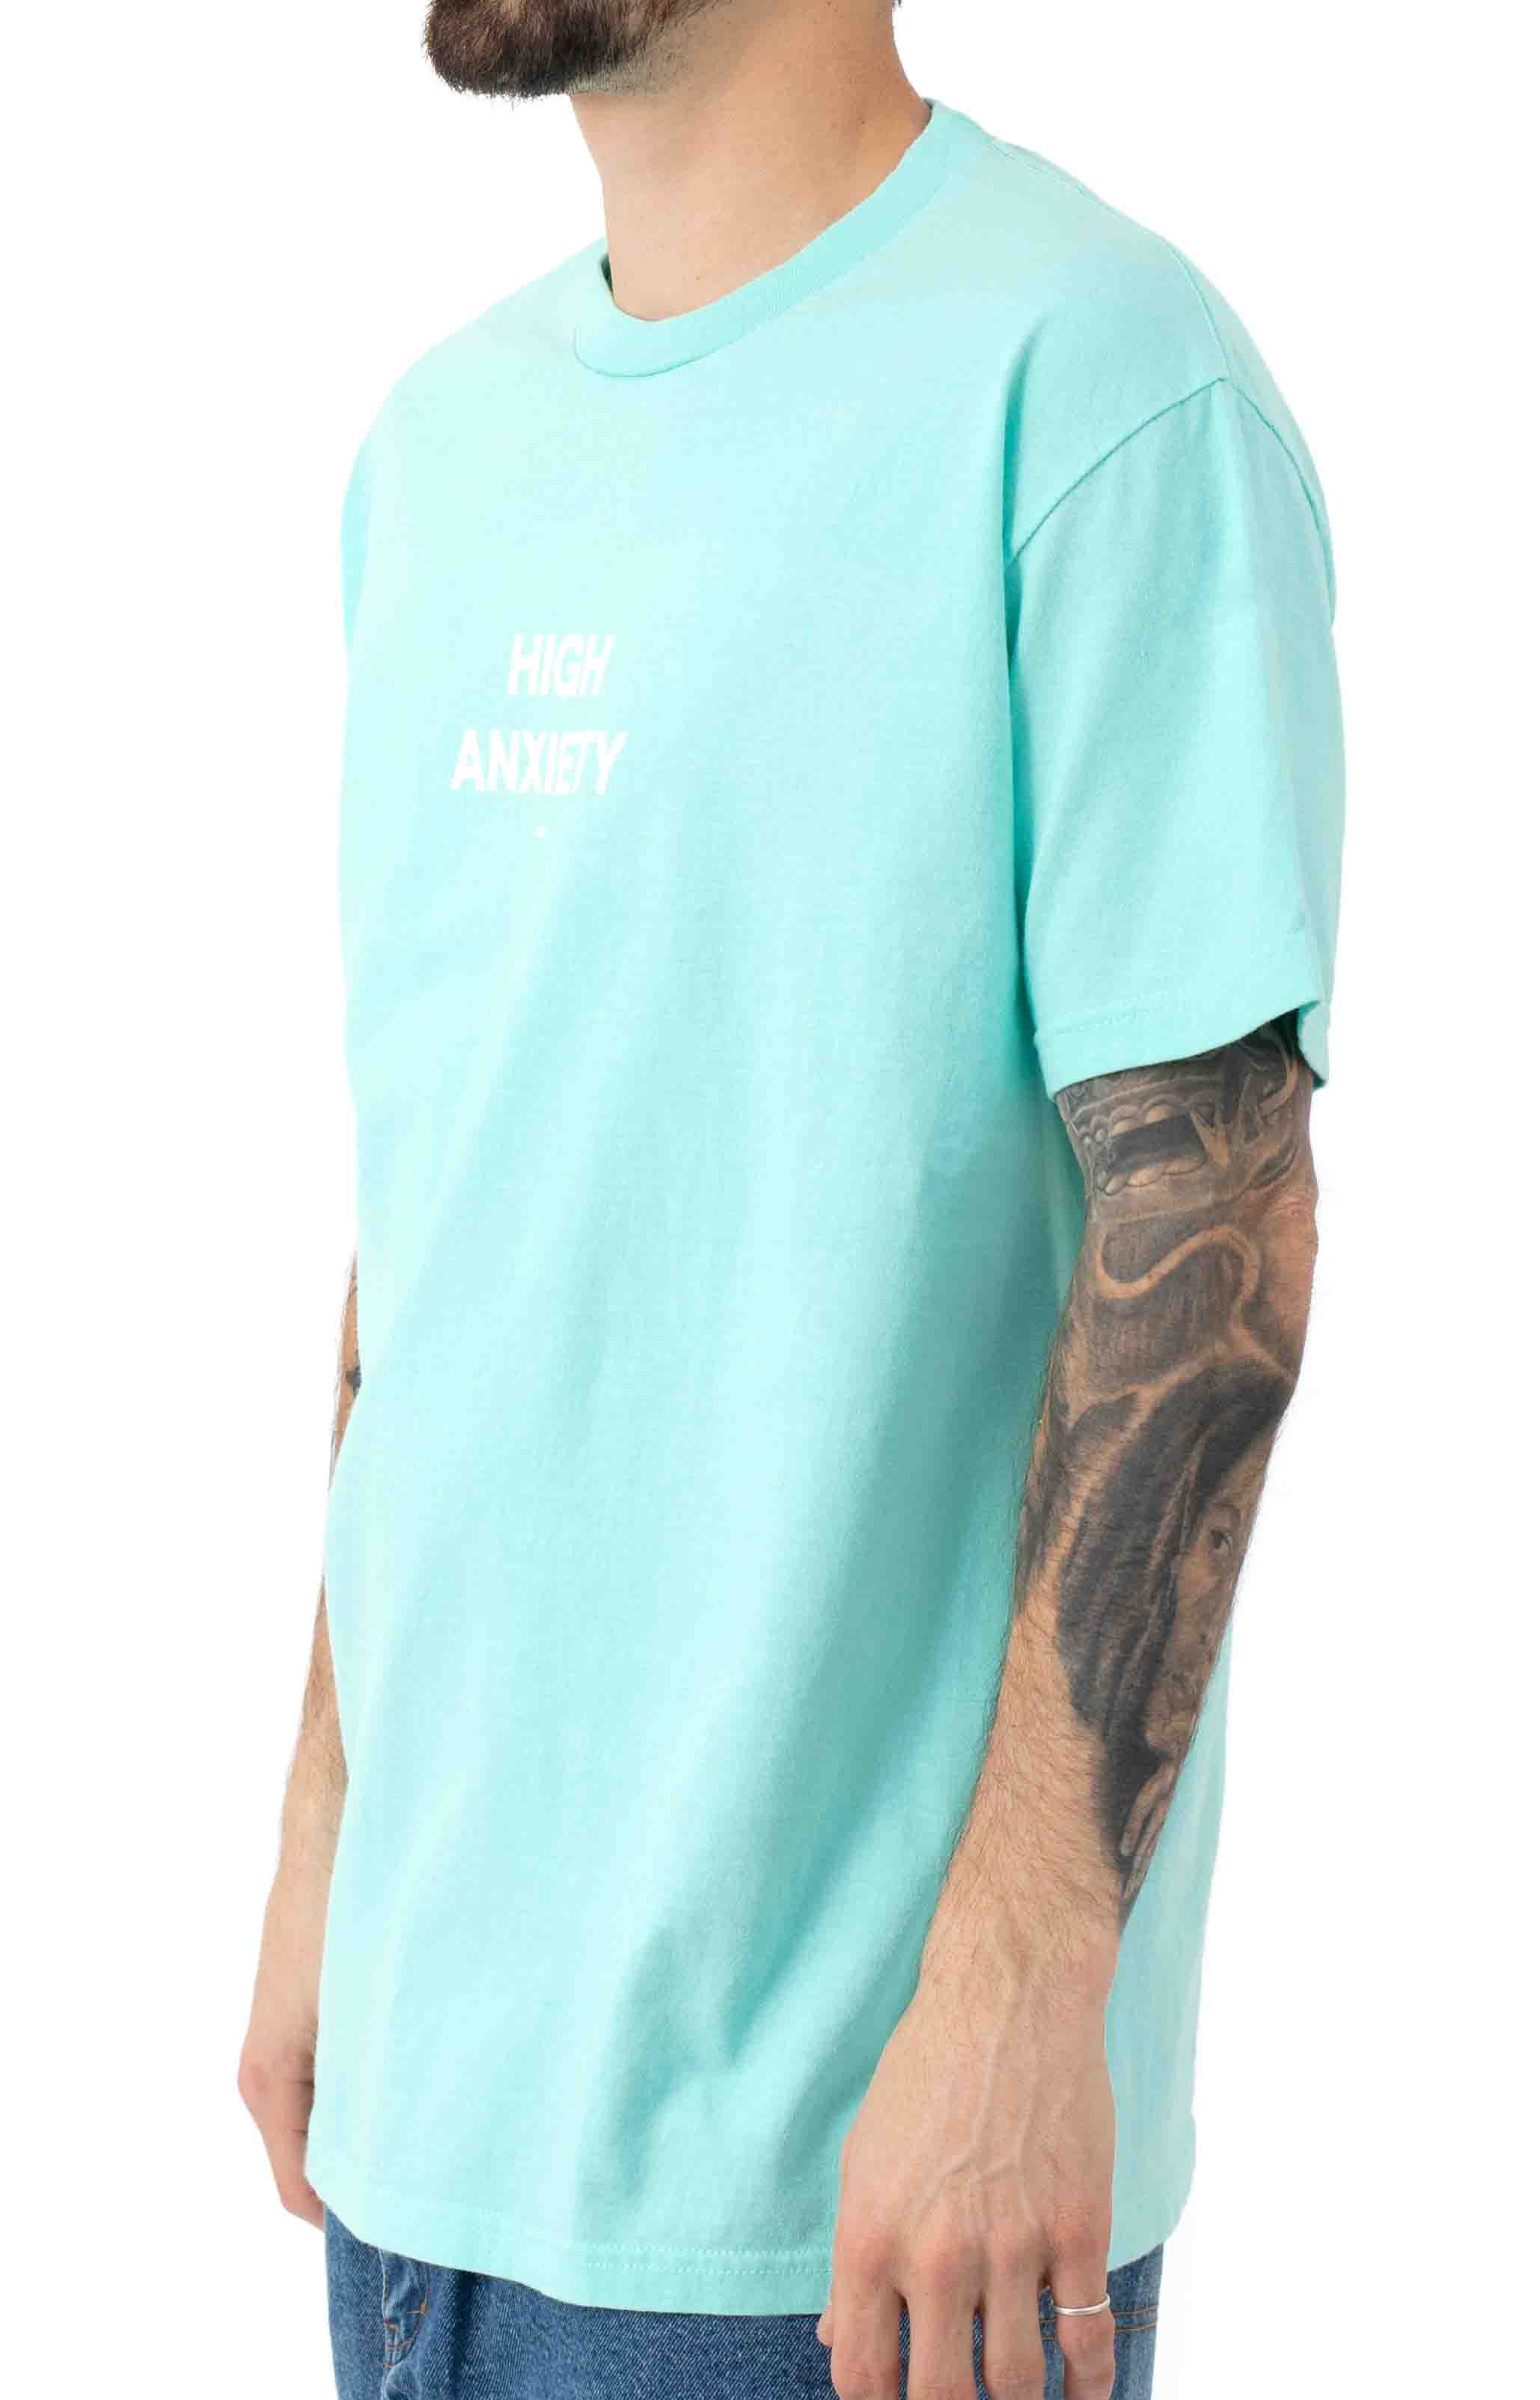 High Anxiety T-Shirt - Mint  2